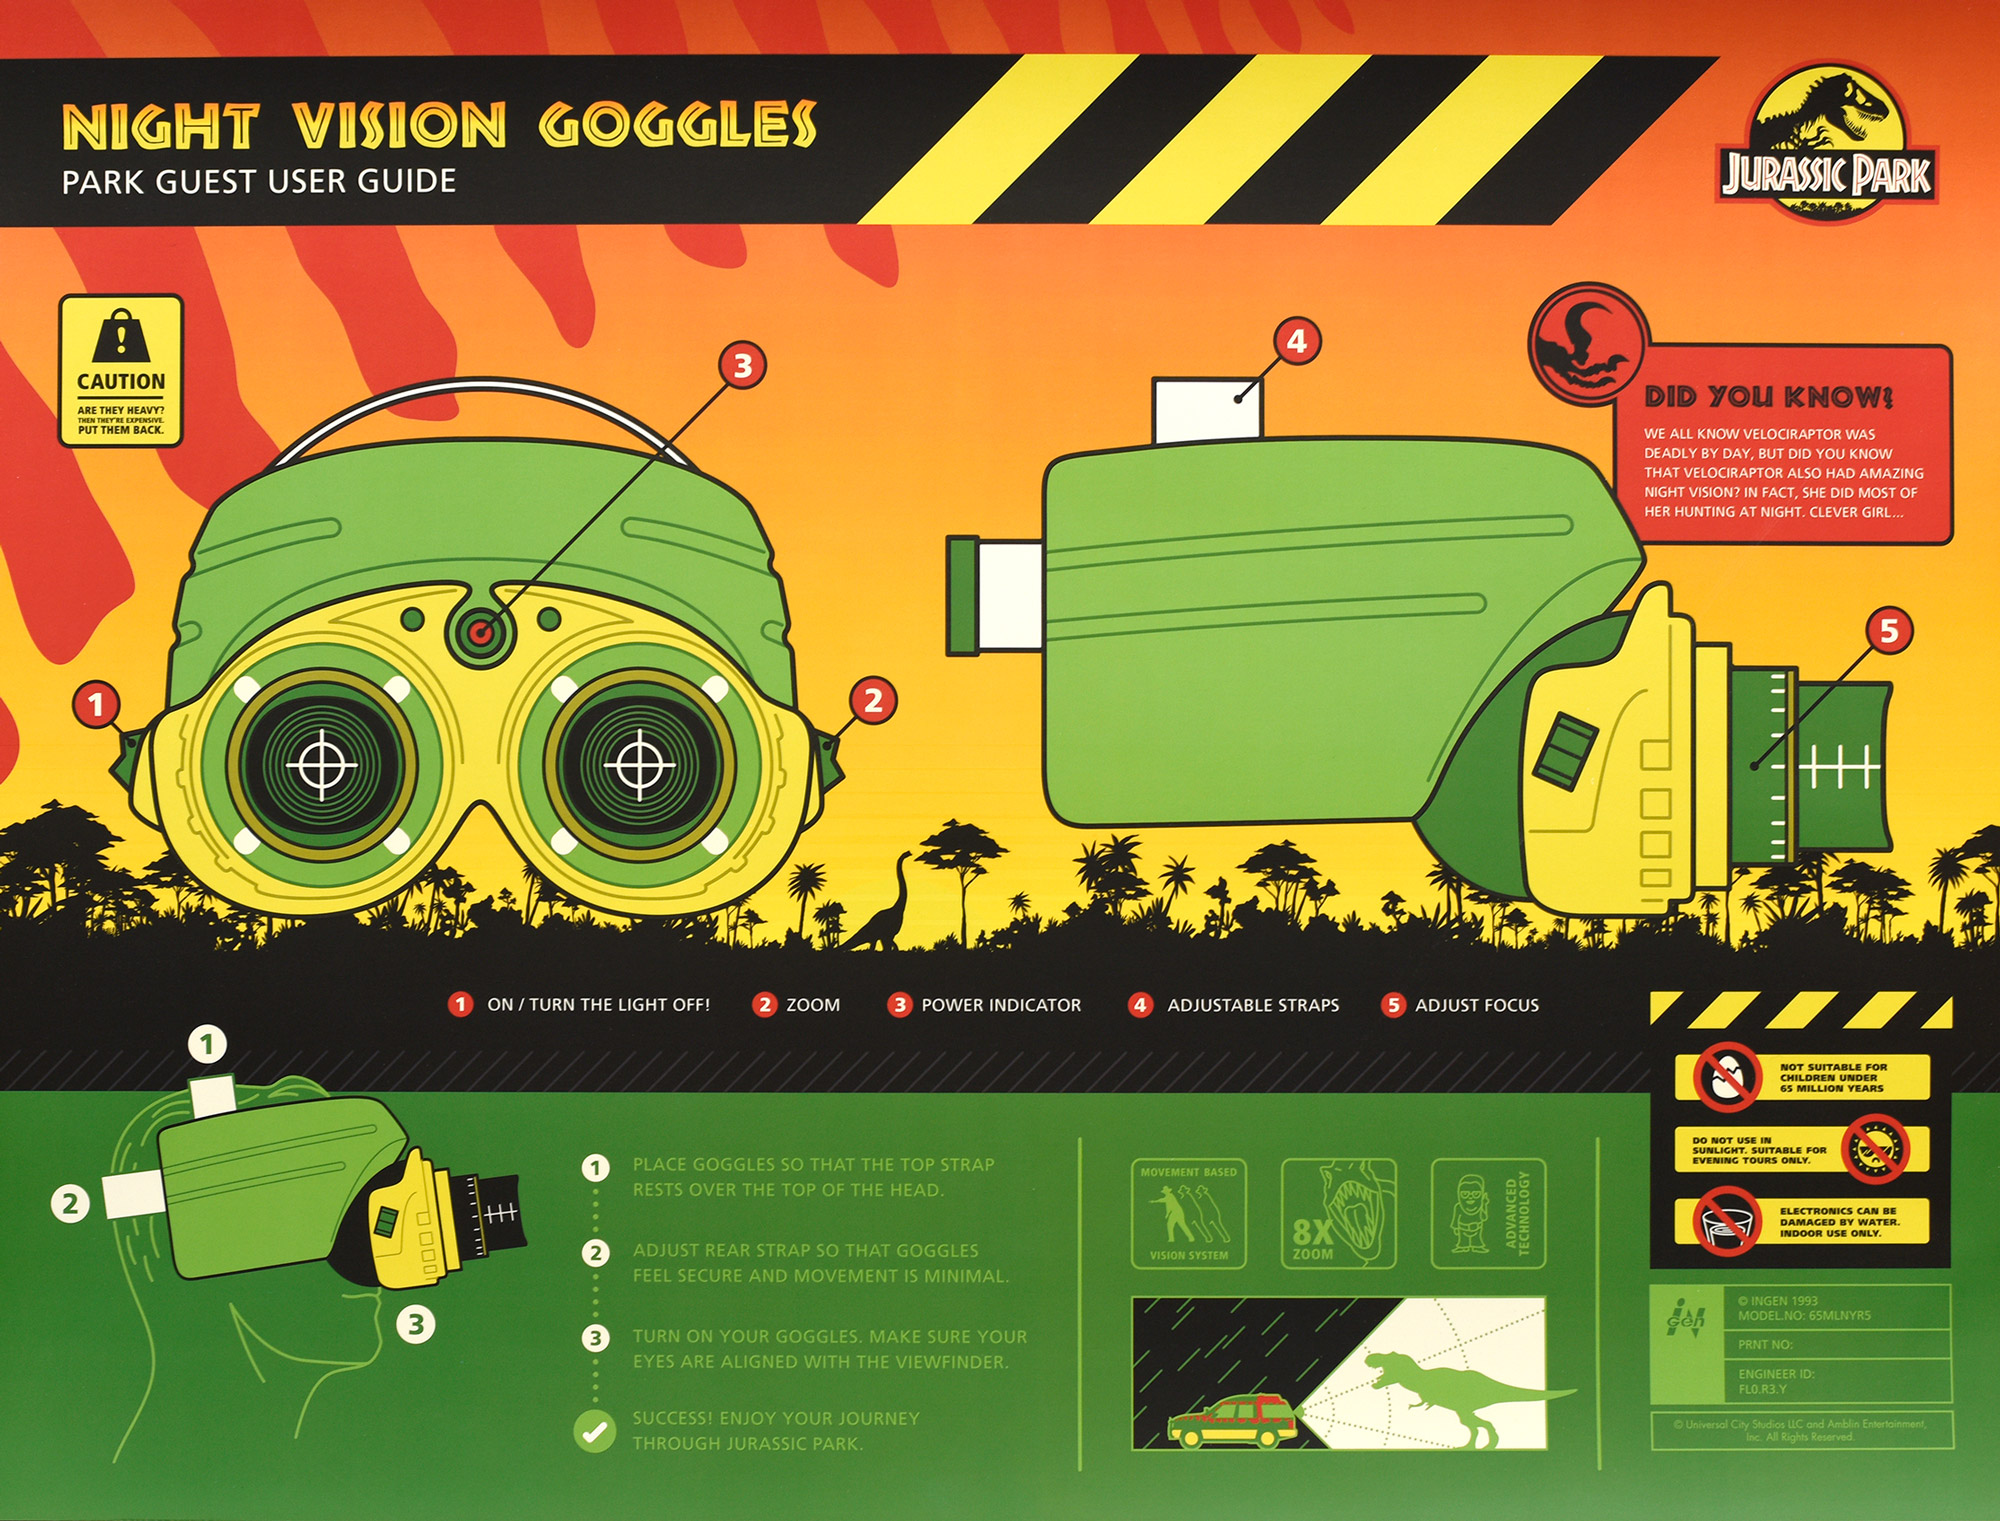 Jurassic Park Night Vision Goggles User Guide poster